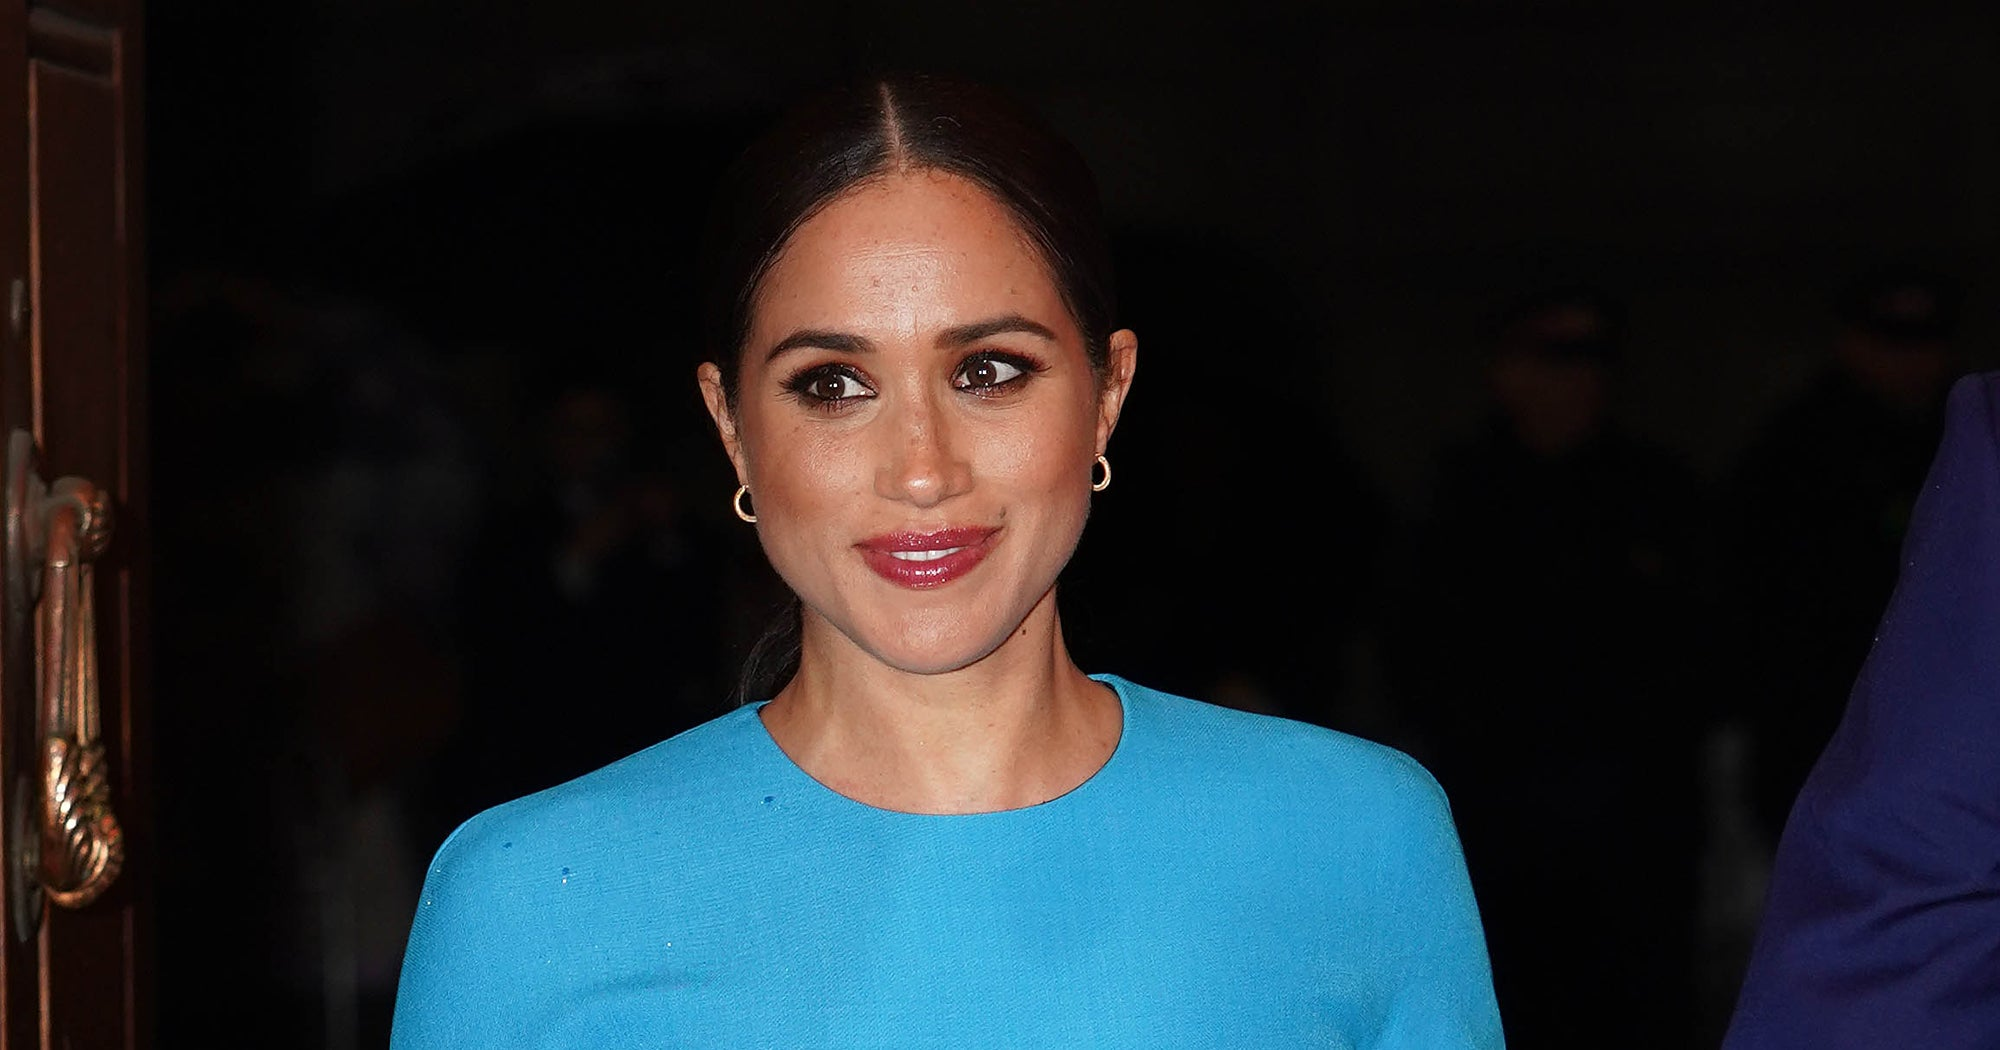 Meghan Markle Wore The Perfect Work-From-Home Outfit